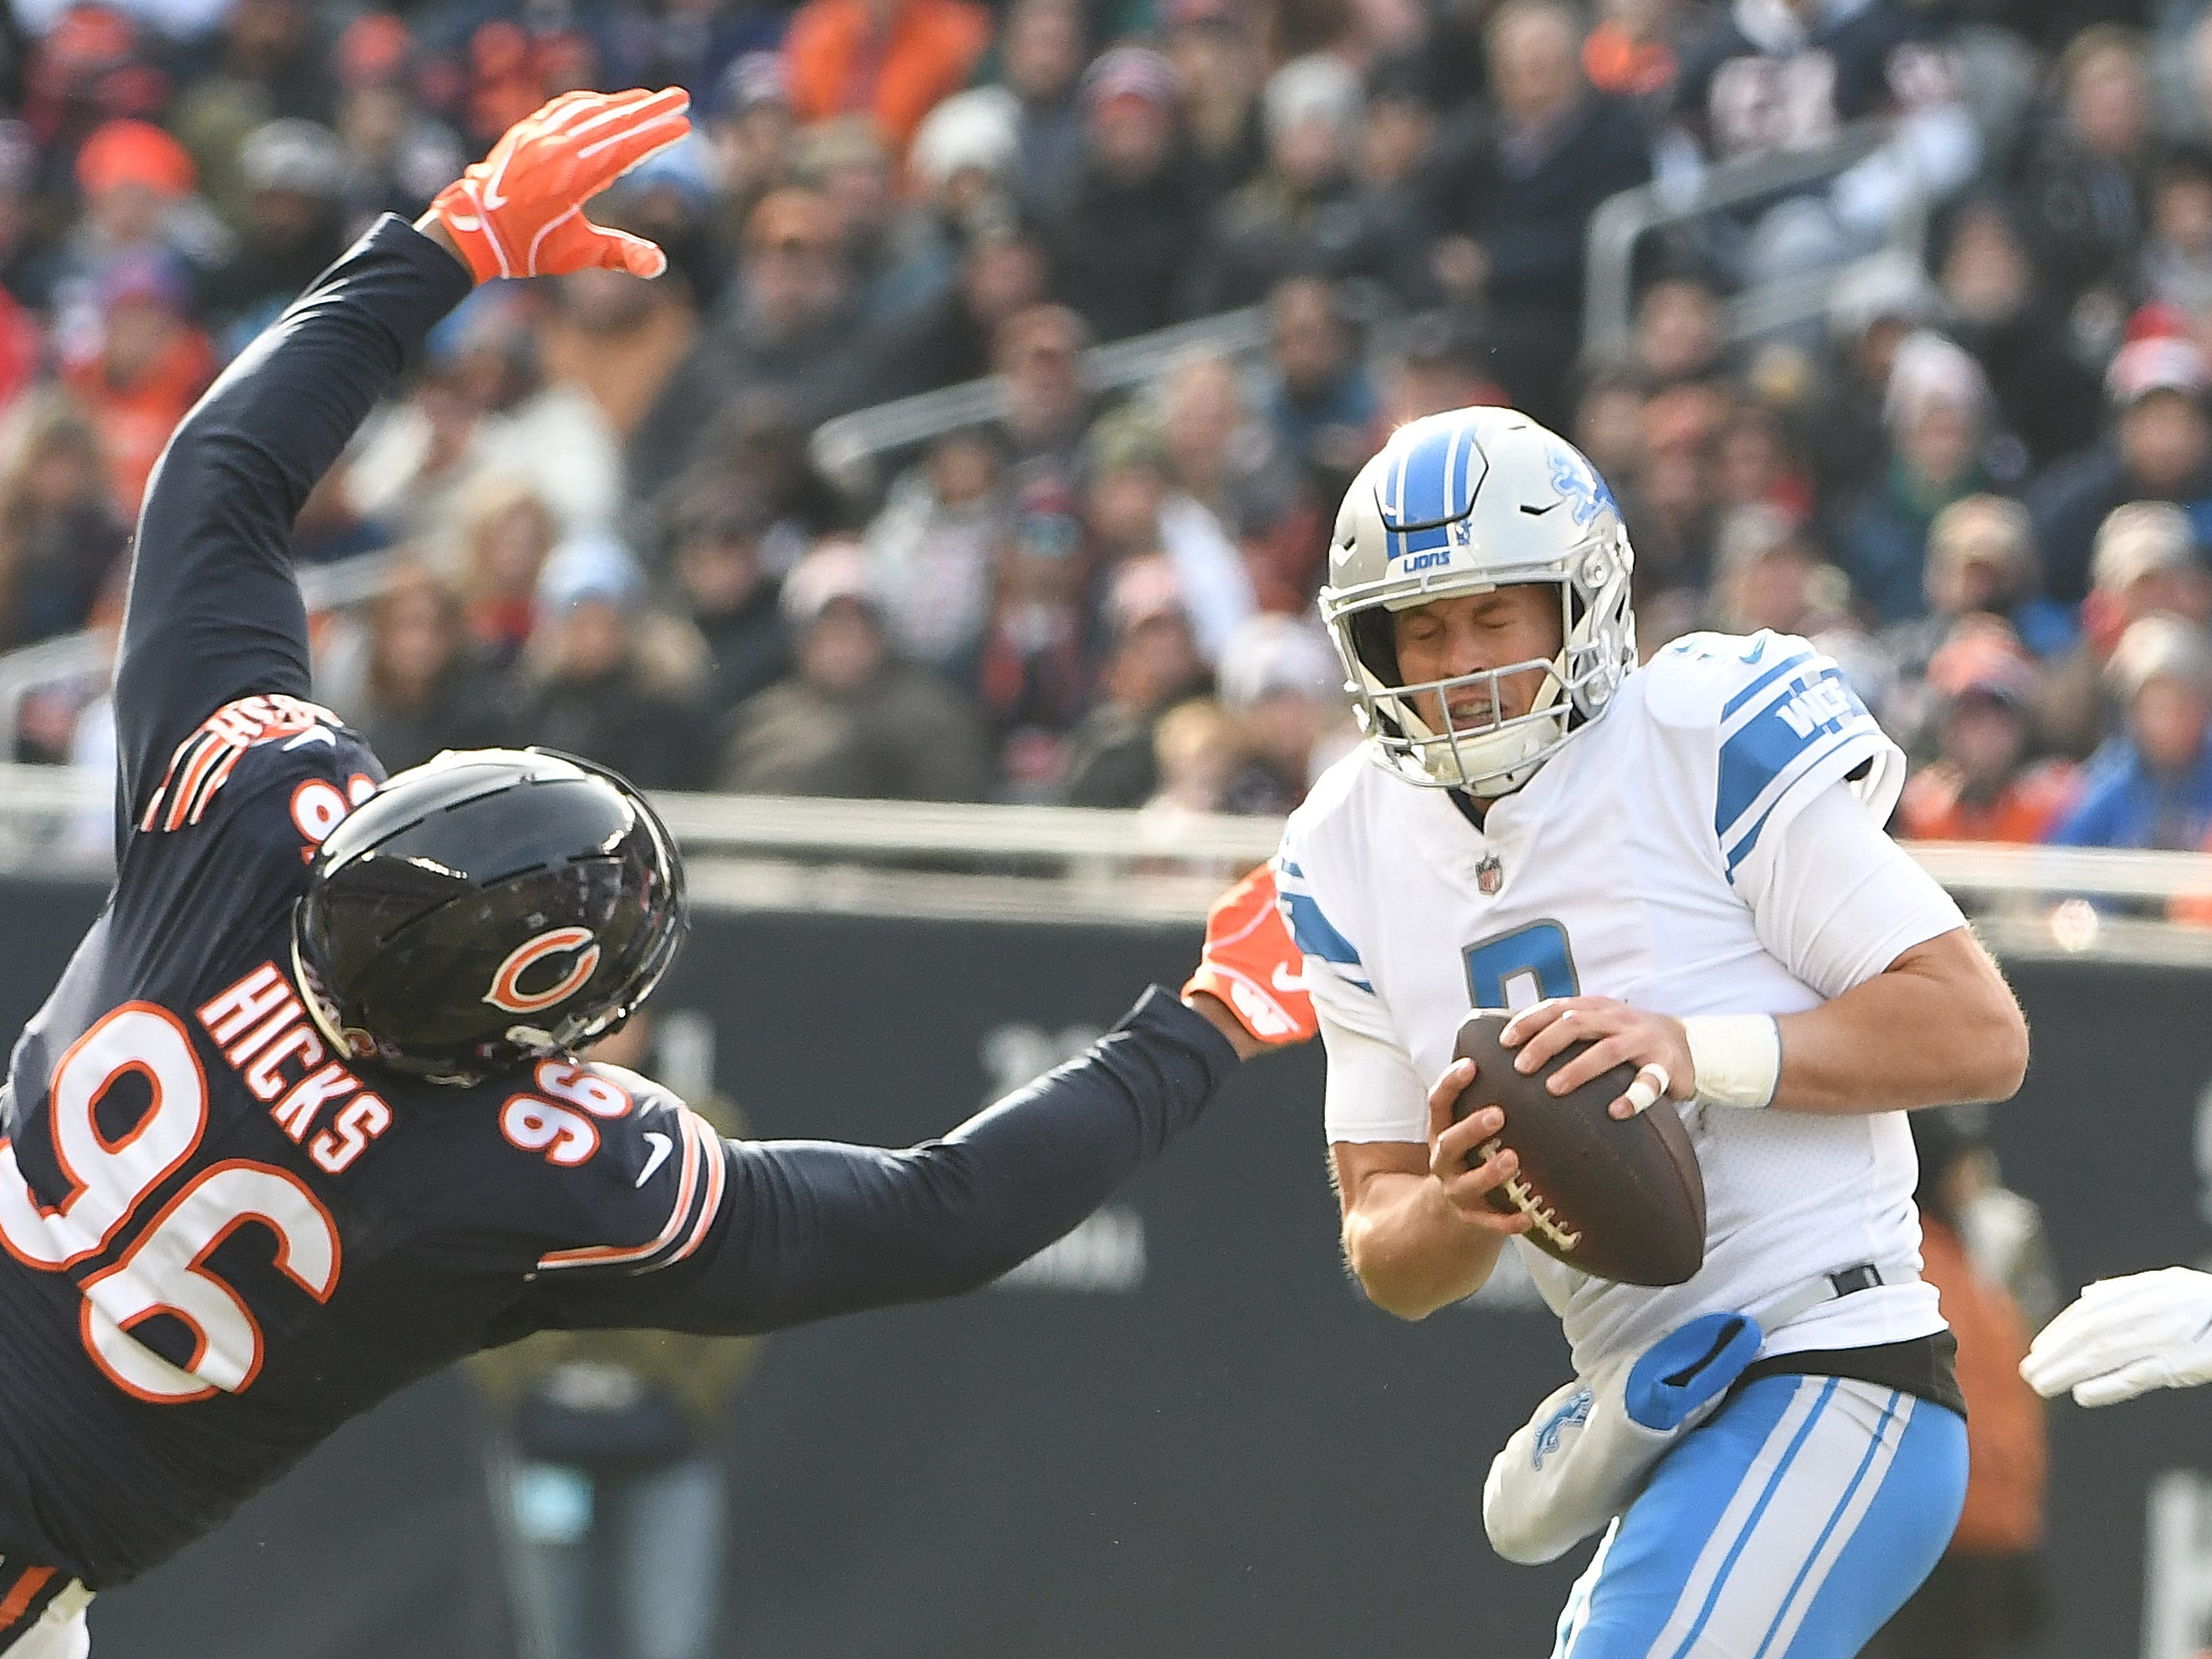 The hits are coming as Lions quarterback Matthew Stafford braces for a sack by Bears' Akiem Hicks and Roquan Smith, not shown, in the fist quarter.